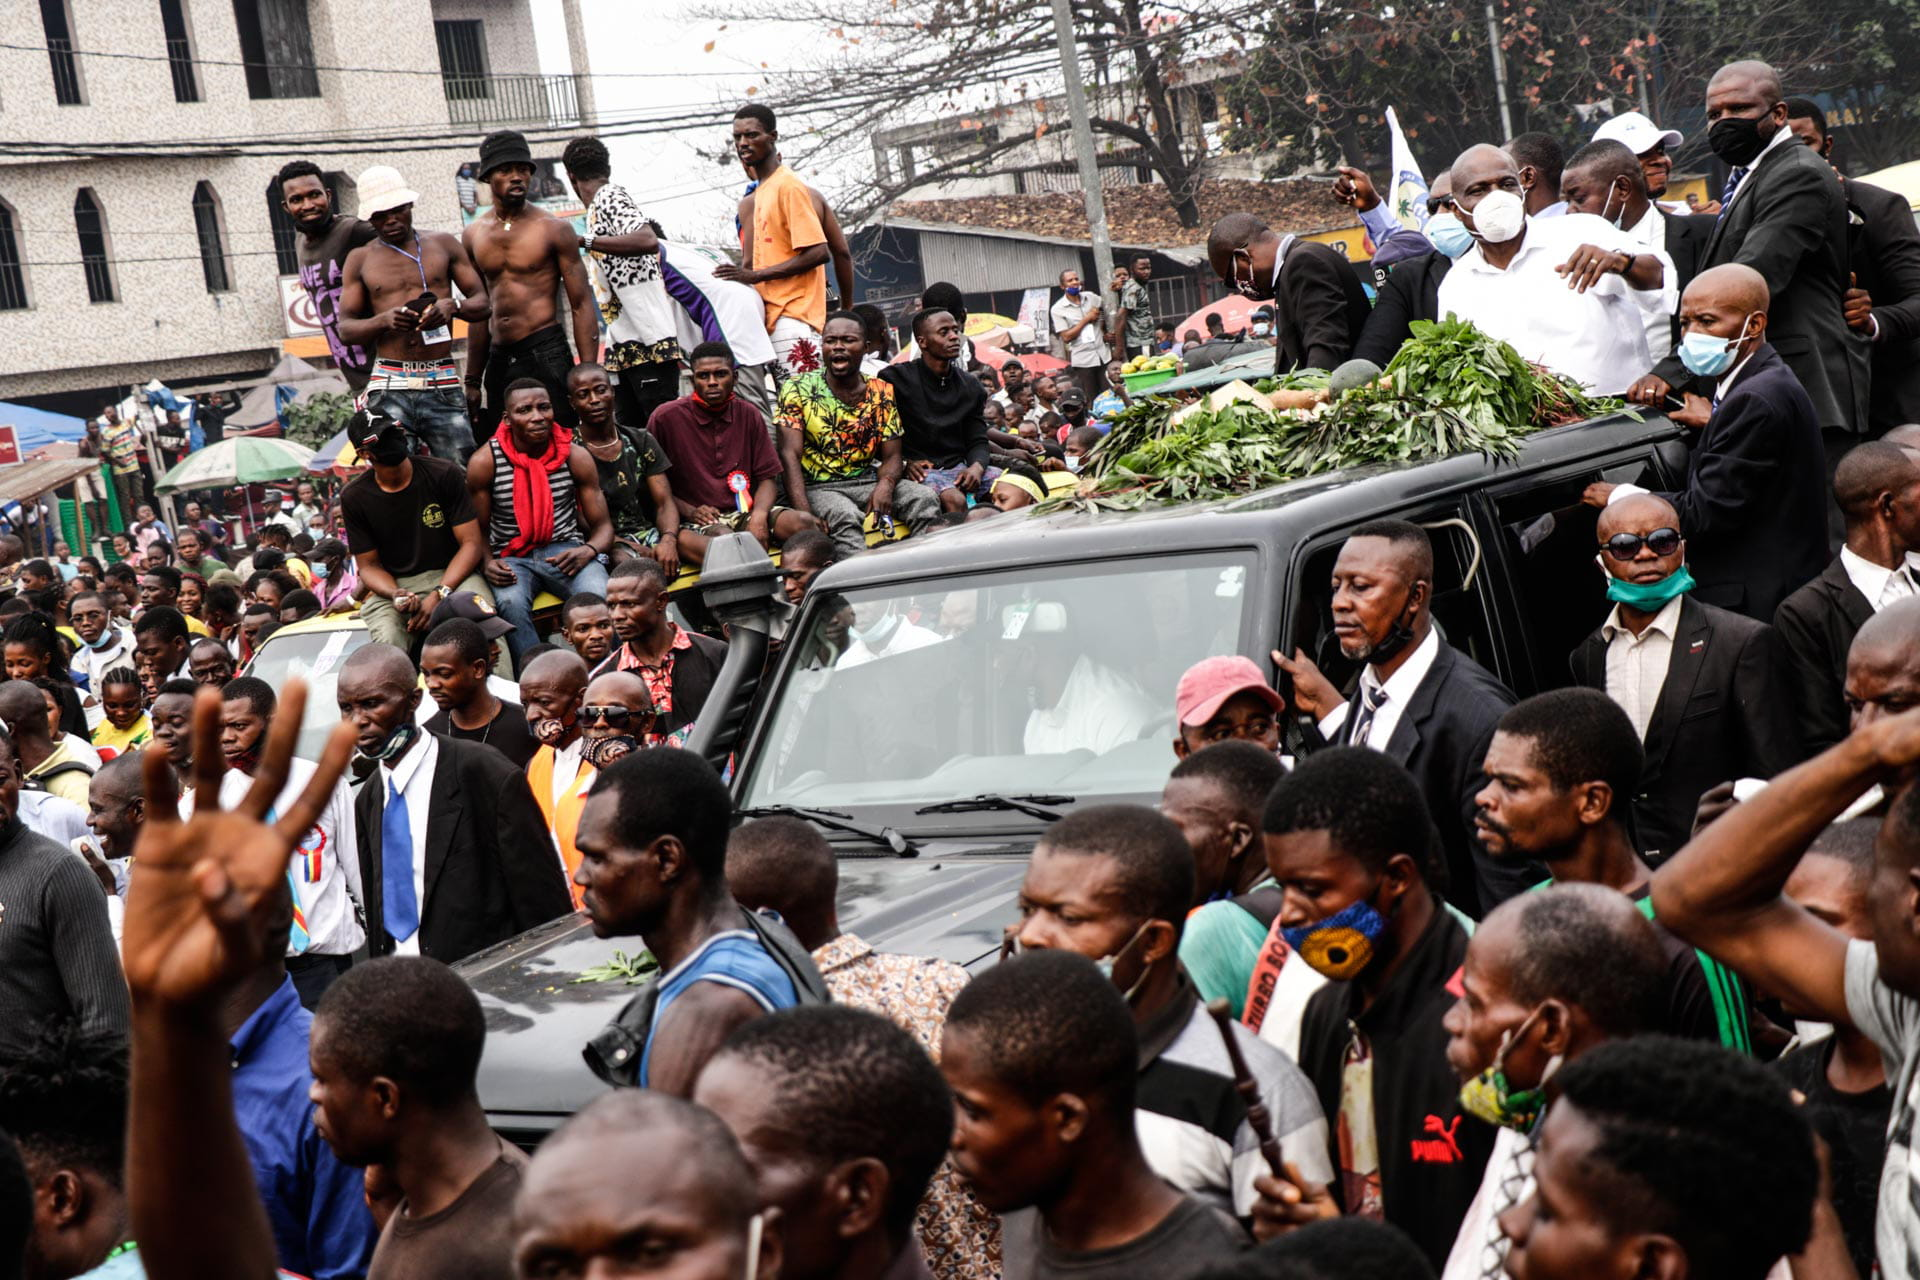 Kinshasa, DRC, August 23th 2020. Supporters escort Lamuka opposition party leader Martin Fayulu (in white in vehicle top right) through the streets of Kinshasa as he returned to Congo this week after being stuck in the United States for five months due to coronavirus travel restrictions. © Justin Makangara for Fondation Carmignac